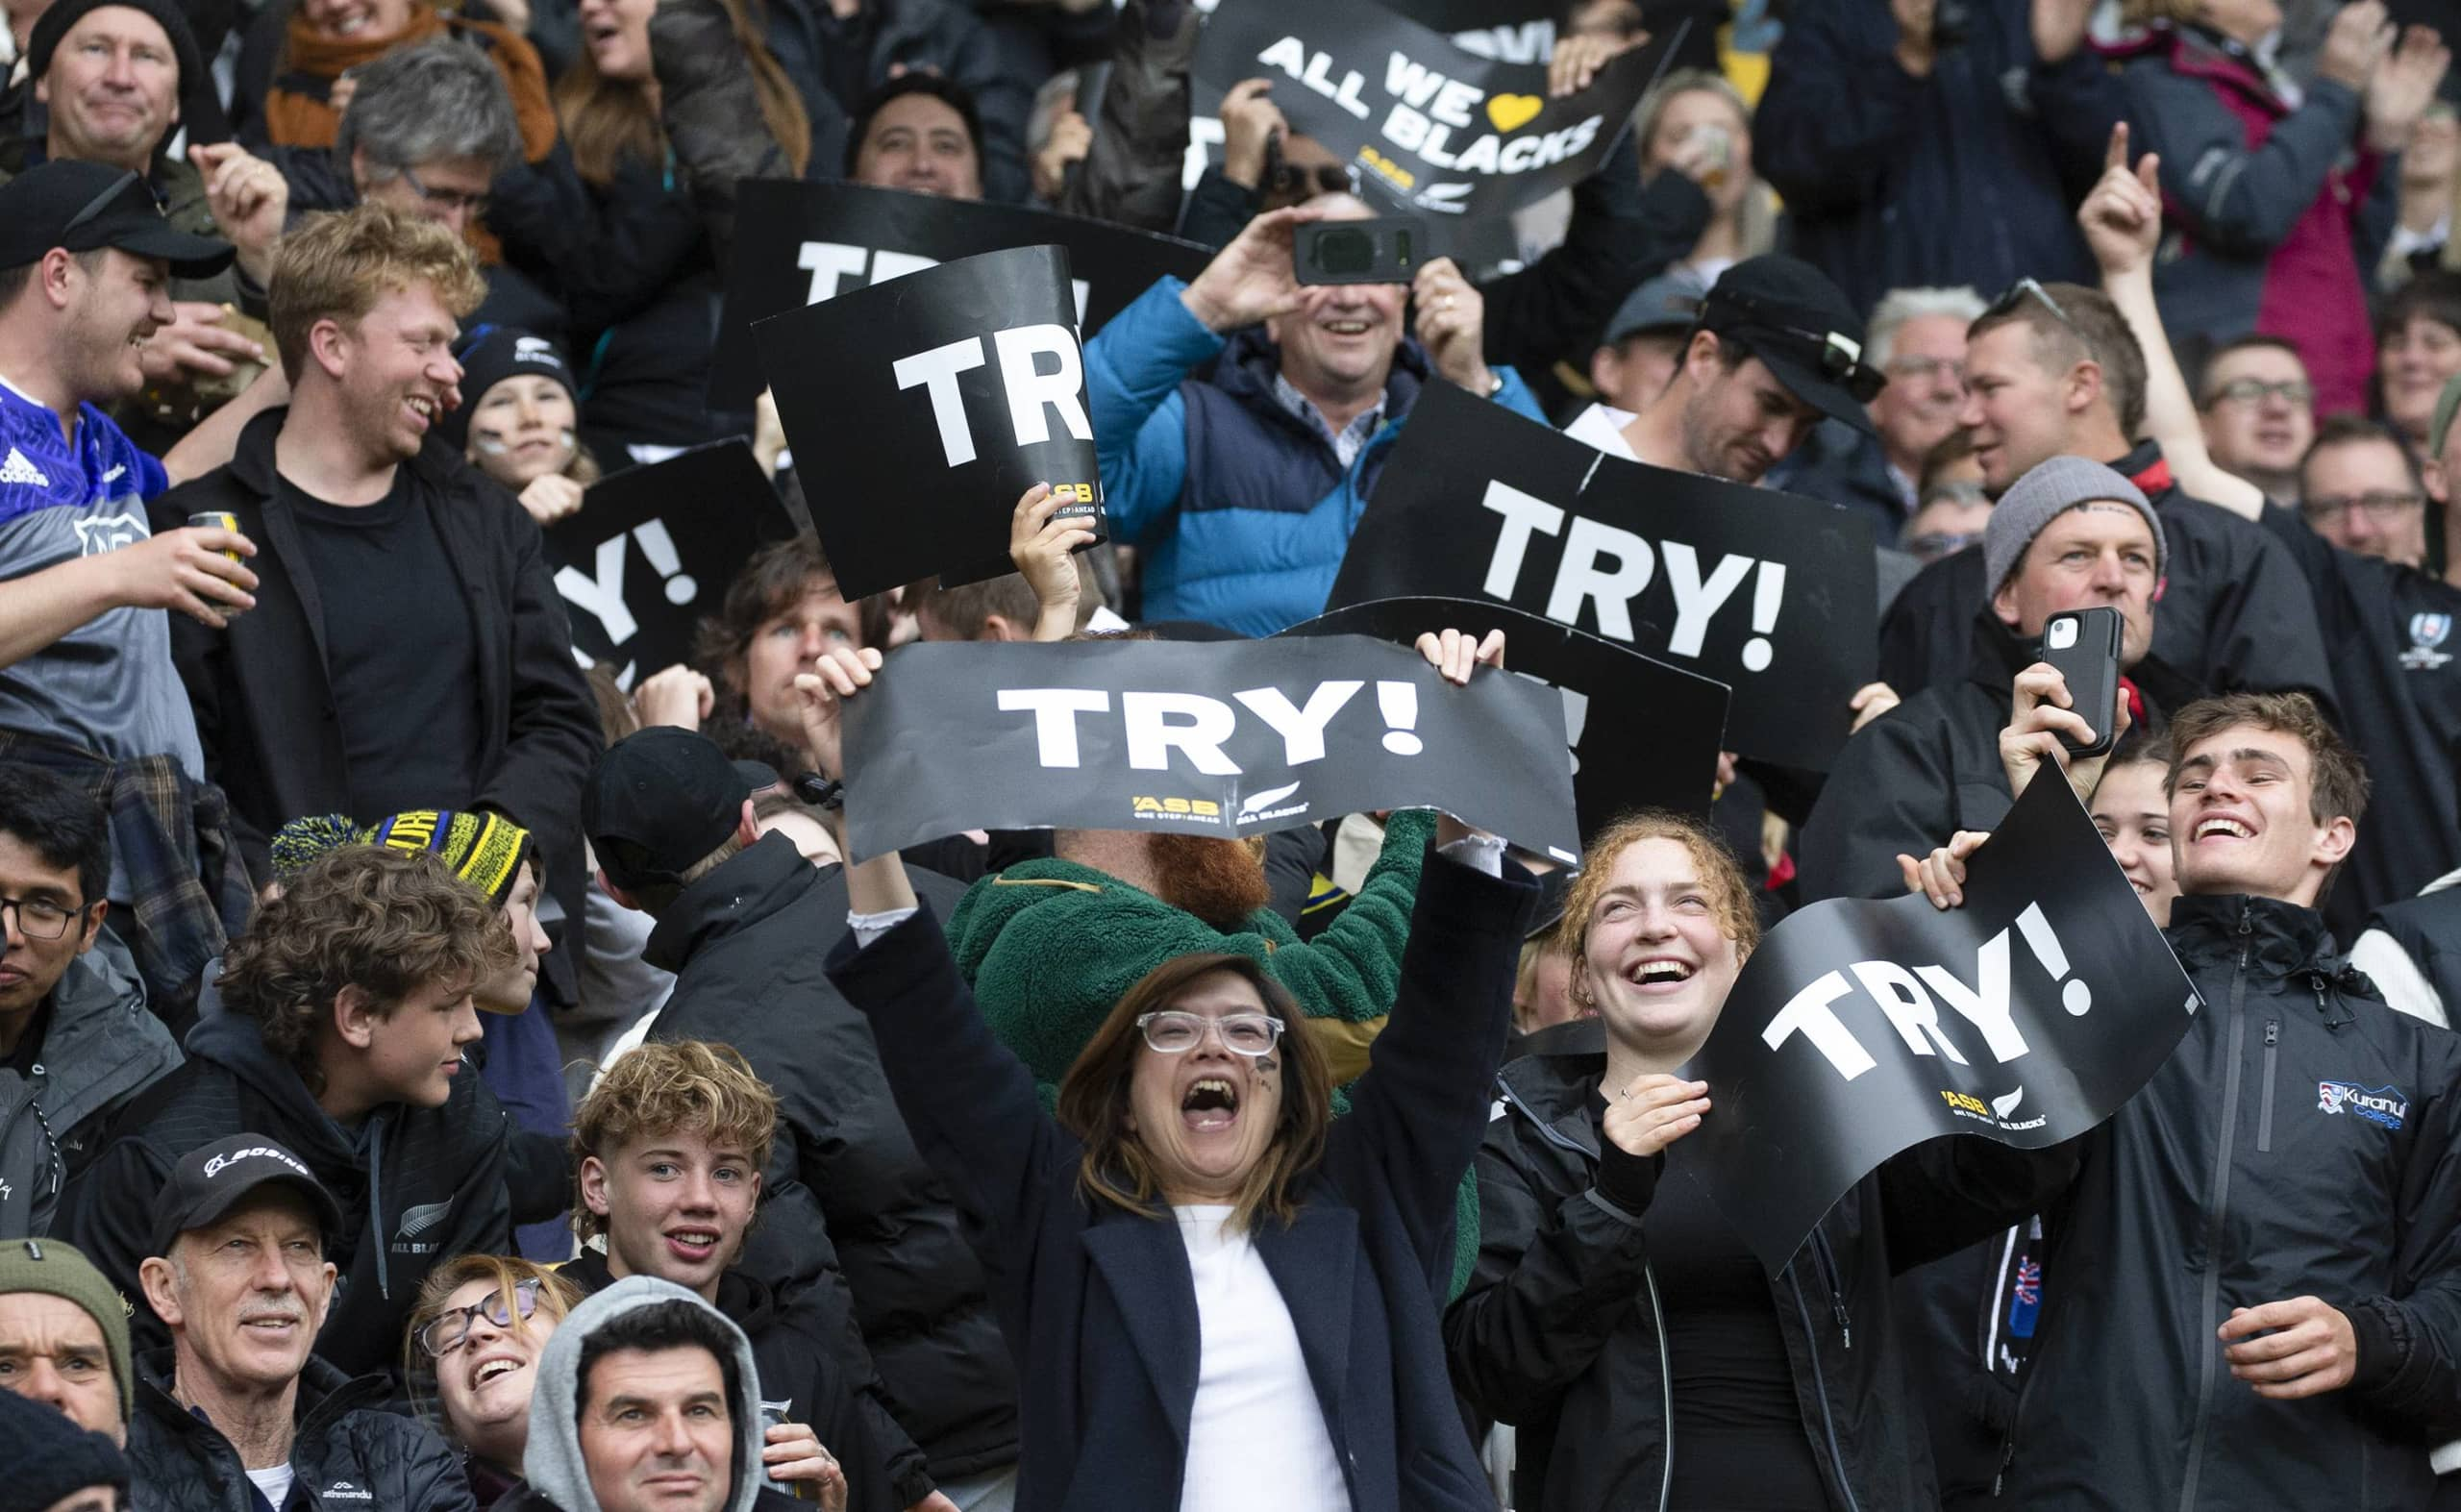 New Zealand fans cheer during the Bledisloe Cup test between the All Blacks and Australia's Wallabies on Sunday in Wellington. | PHOTOSPORT / VIA AP